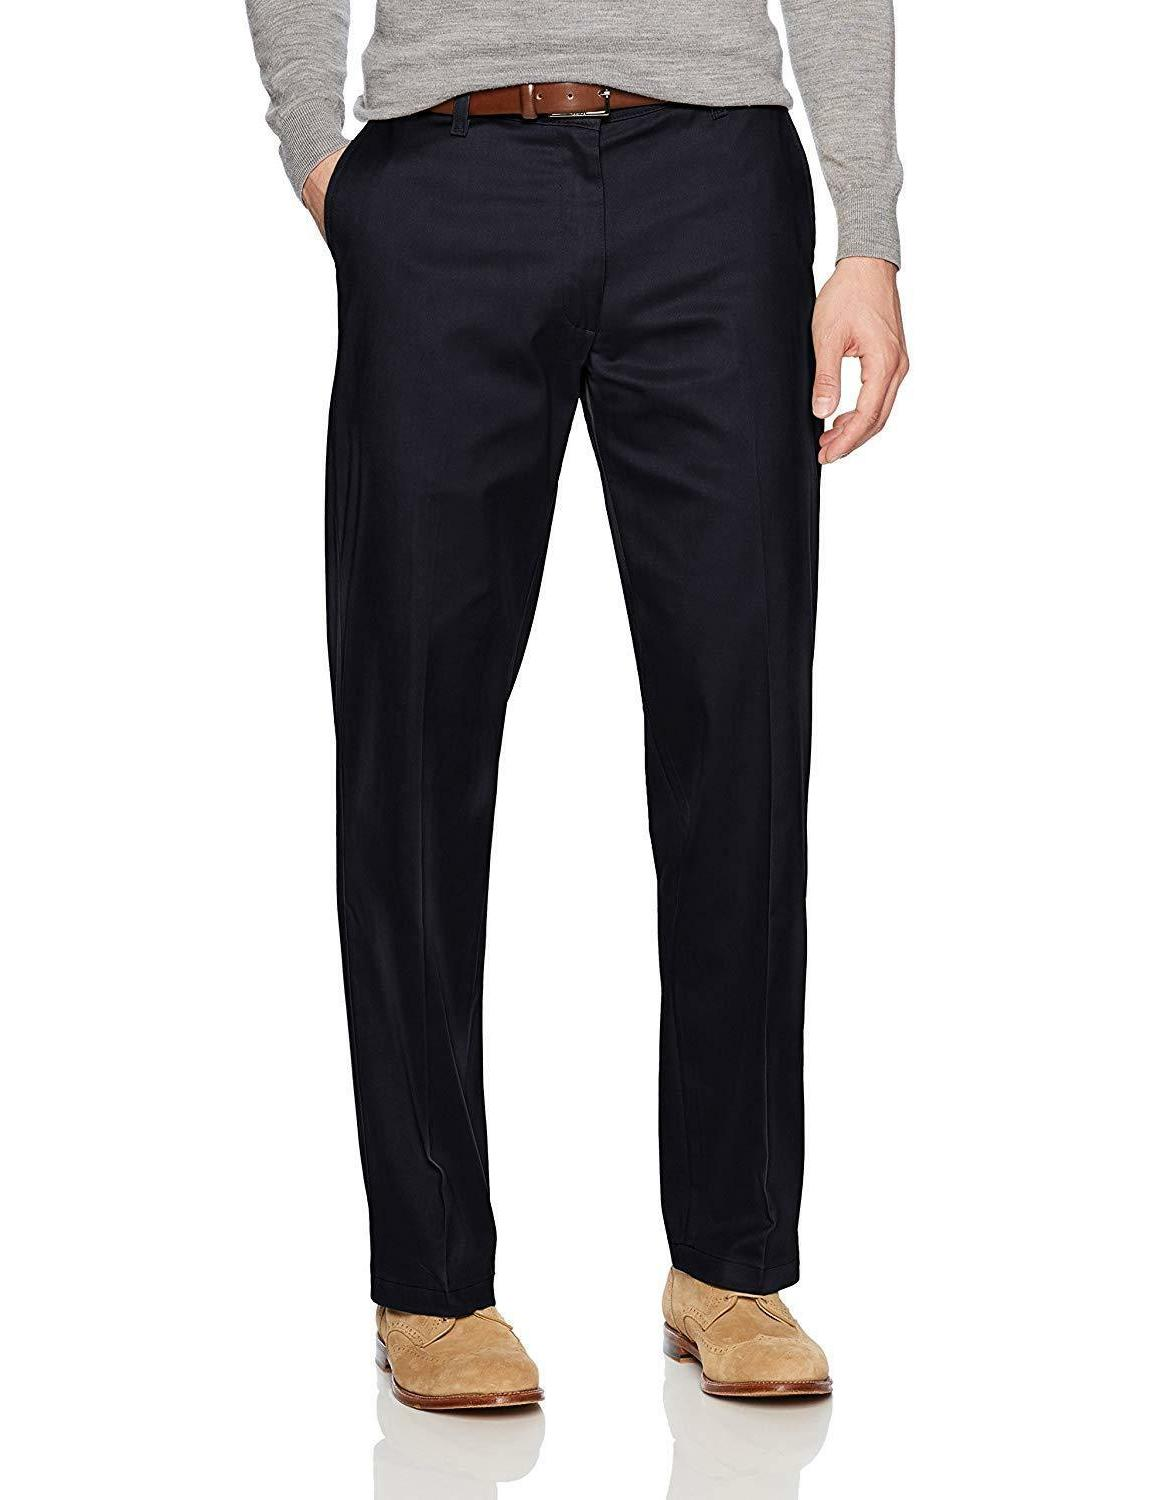 LEE Men's Freedom Stretch Front Pant